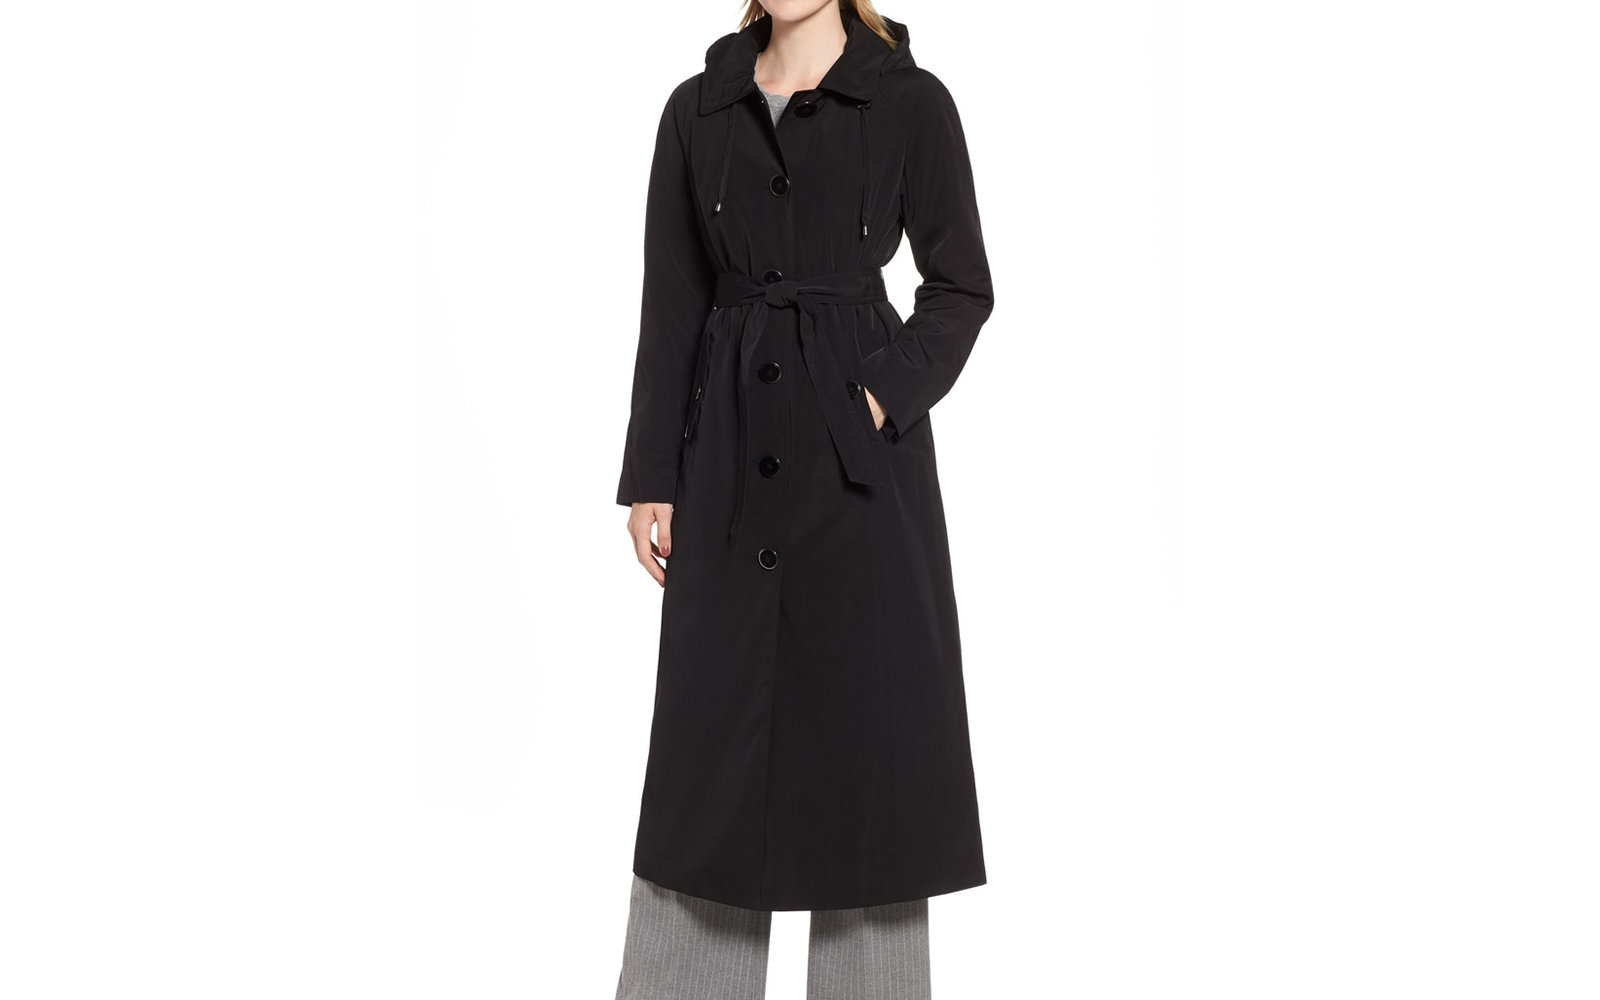 Best Hooded Trench Coat: London Fog Long Trench Coat